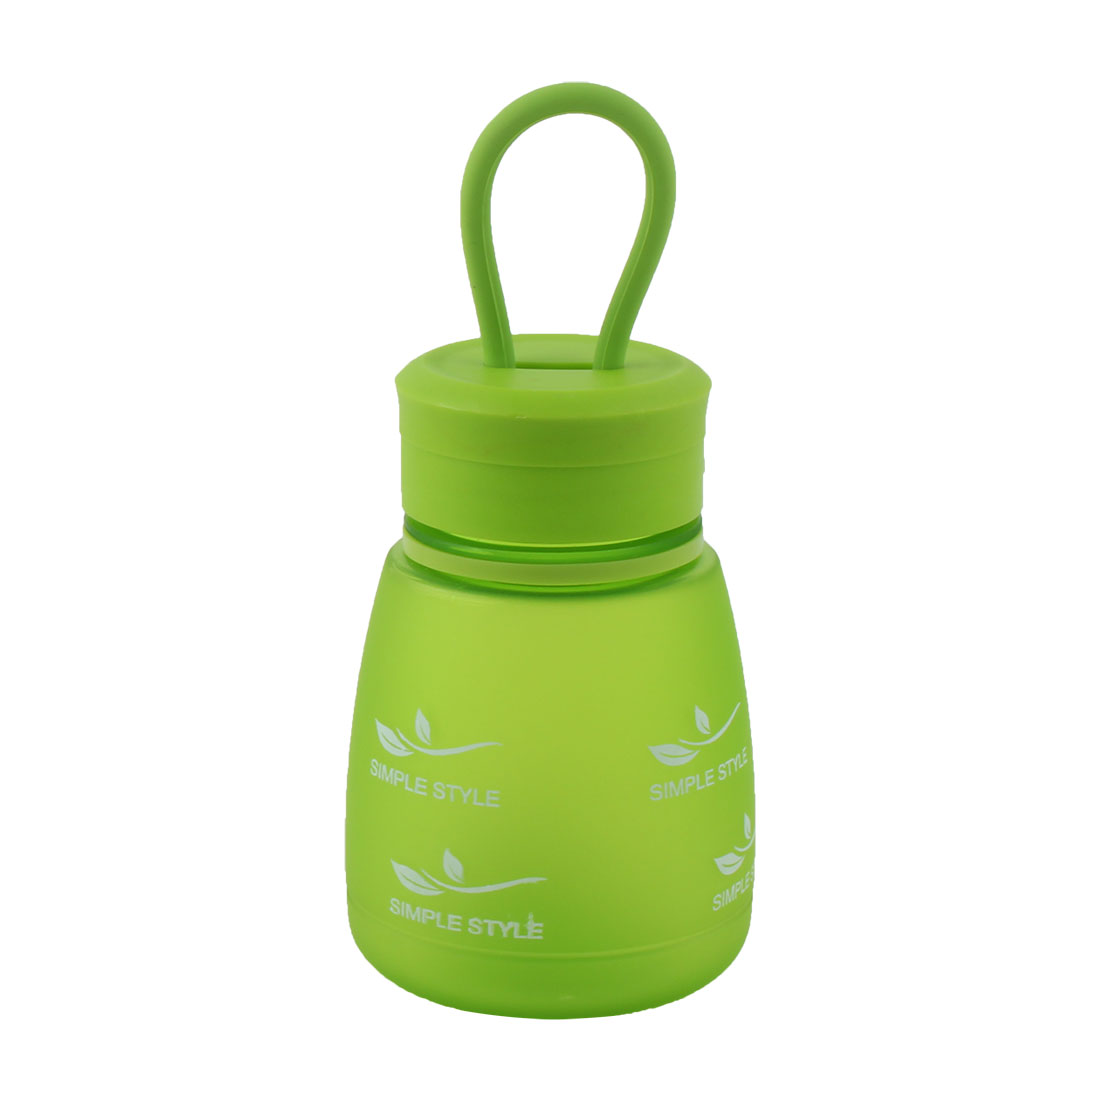 Student School Plastic Leaf Pattern Design Portable Frosted Cup Travel Water Bottle Green 330ml